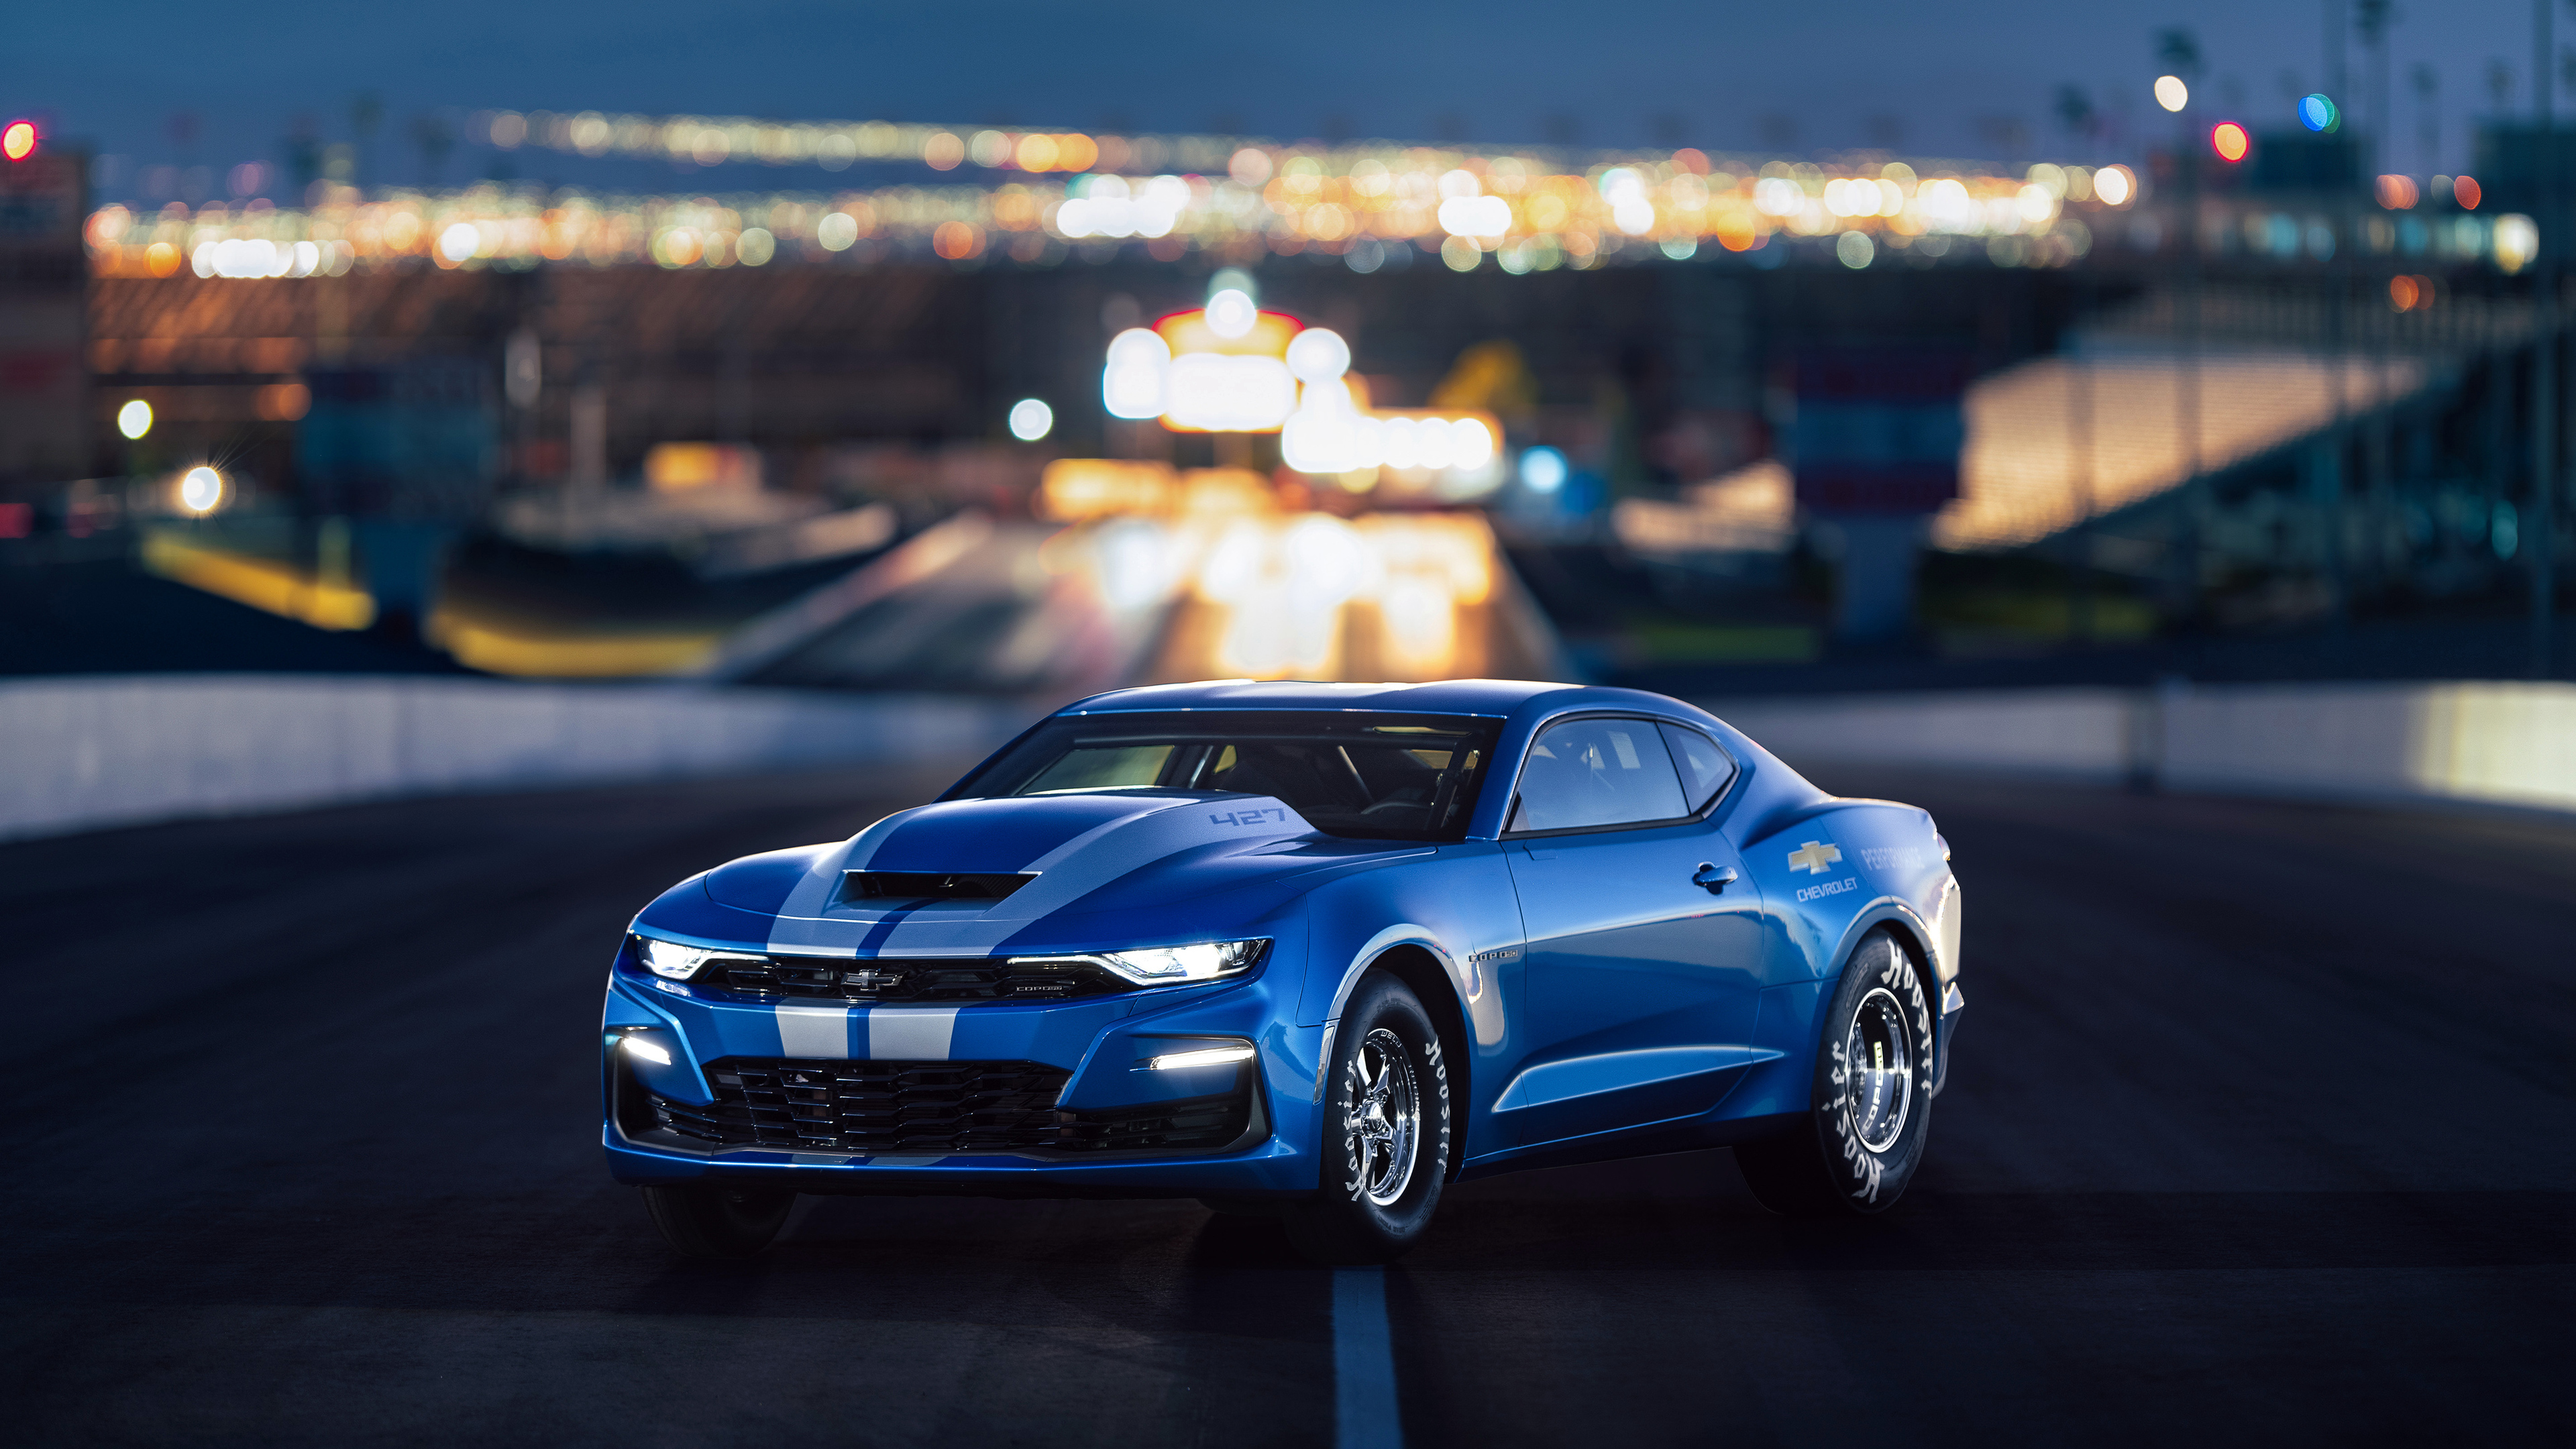 2019 chevrolet copo camaro 50th anniversary 1541969429 - 2019 Chevrolet COPO Camaro 50th Anniversary - hd-wallpapers, chevrolet wallpapers, chevrolet camaro wallpapers, cars wallpapers, 4k-wallpapers, 2018 cars wallpapers